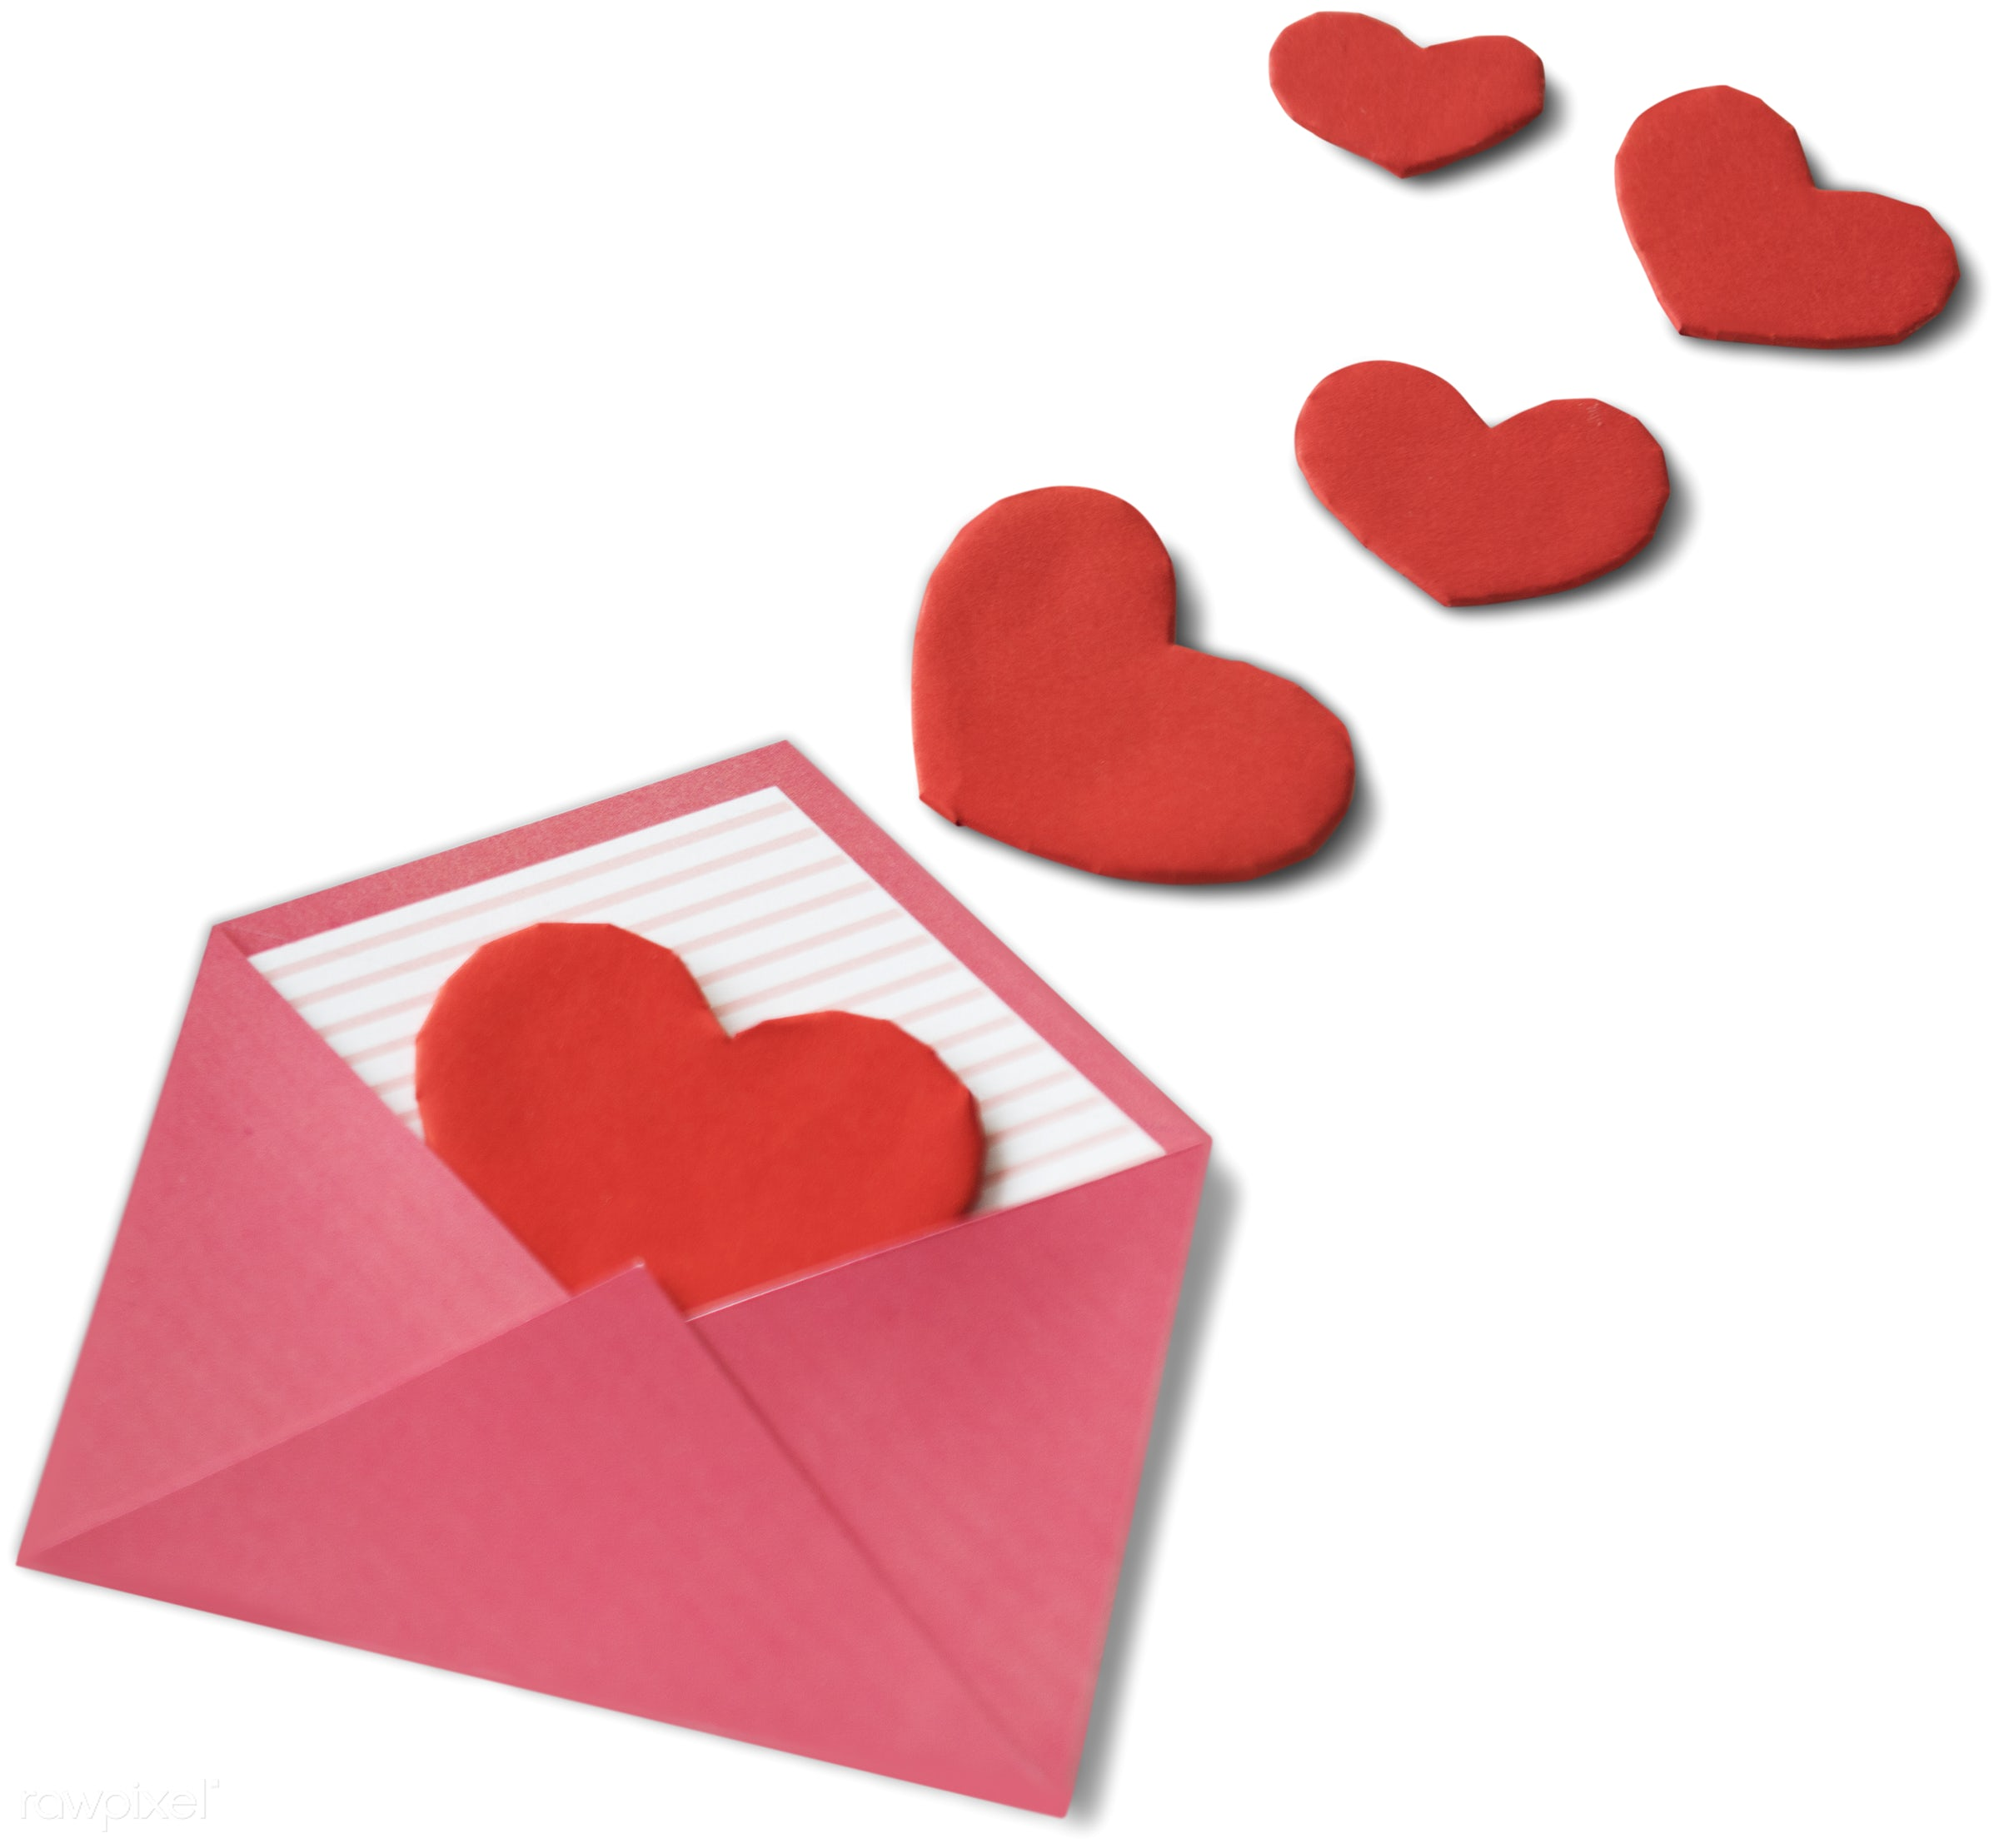 cover, affection, background, card, couple, creative, design, envelope, frame, gift, heart, icon, isolated, isolated on...